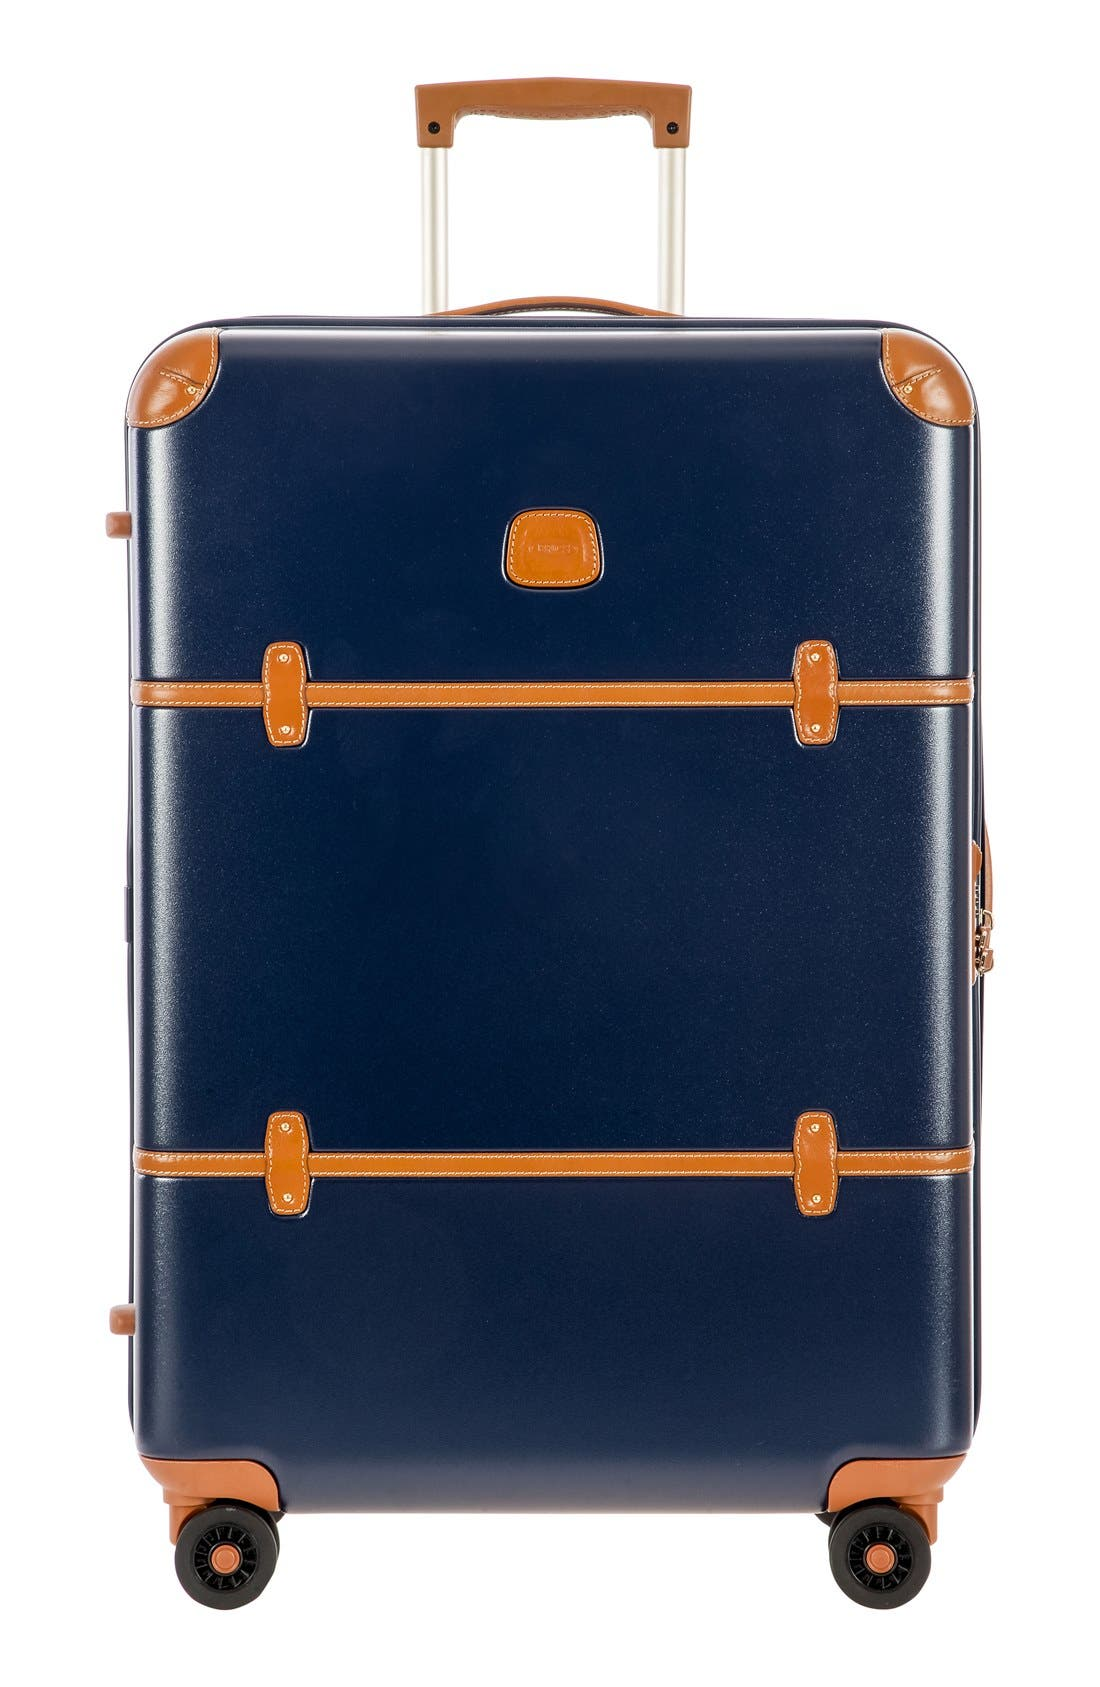 Alternate Image 1 Selected - Bric's 'Bellagio' Rolling Trunk (30 Inch)